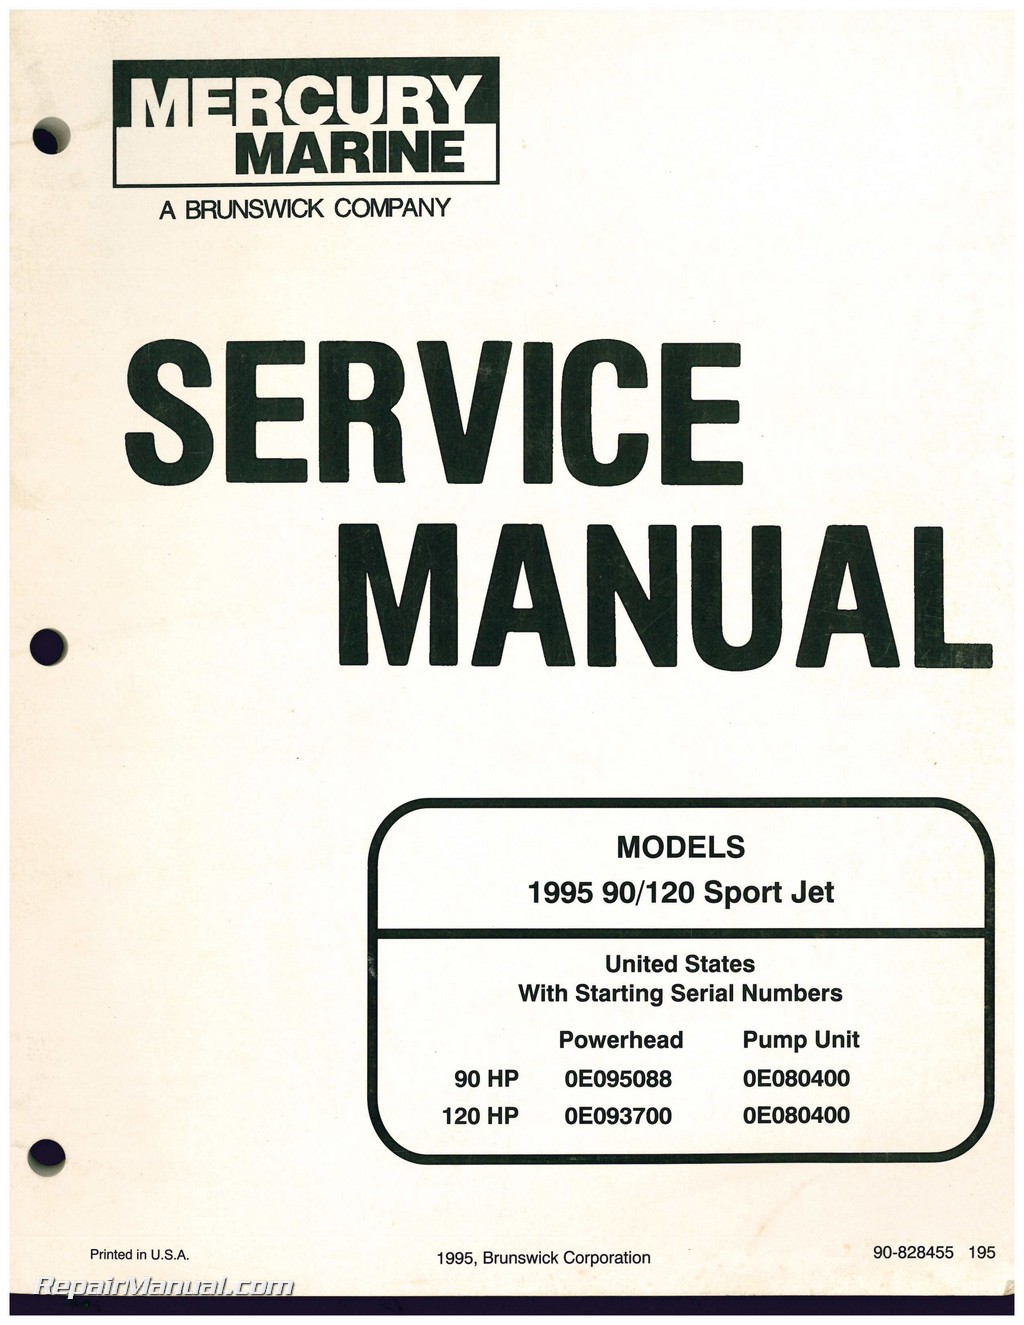 service manual Car repair manuals: chilton, haynes, bentley diy car repair we have the best auto repair manuals to help you maintain, service and repair your precious automobile.